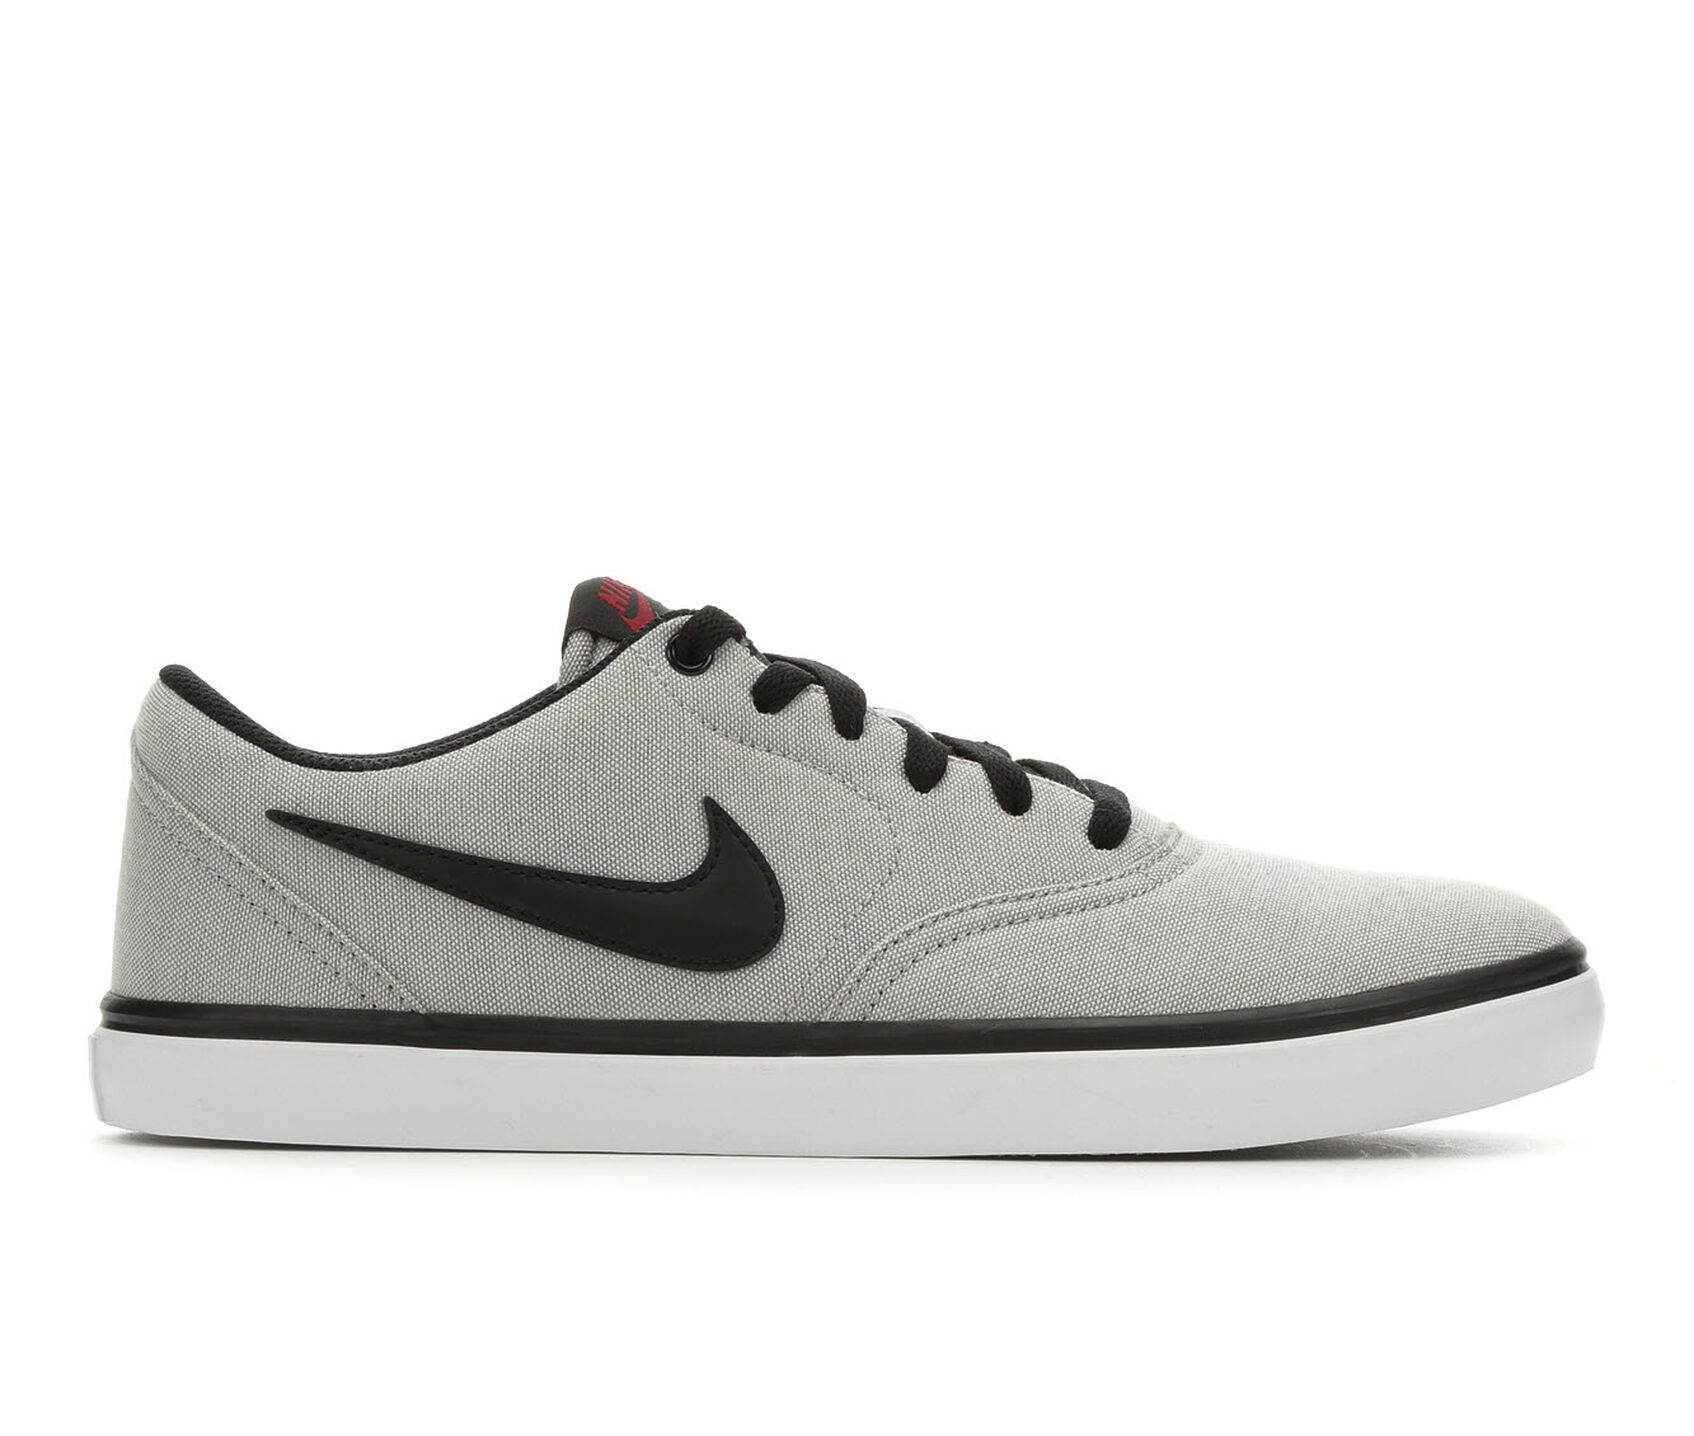 factory price really comfortable sold worldwide Men's Nike SB Check Solar Canvas Skate Shoes